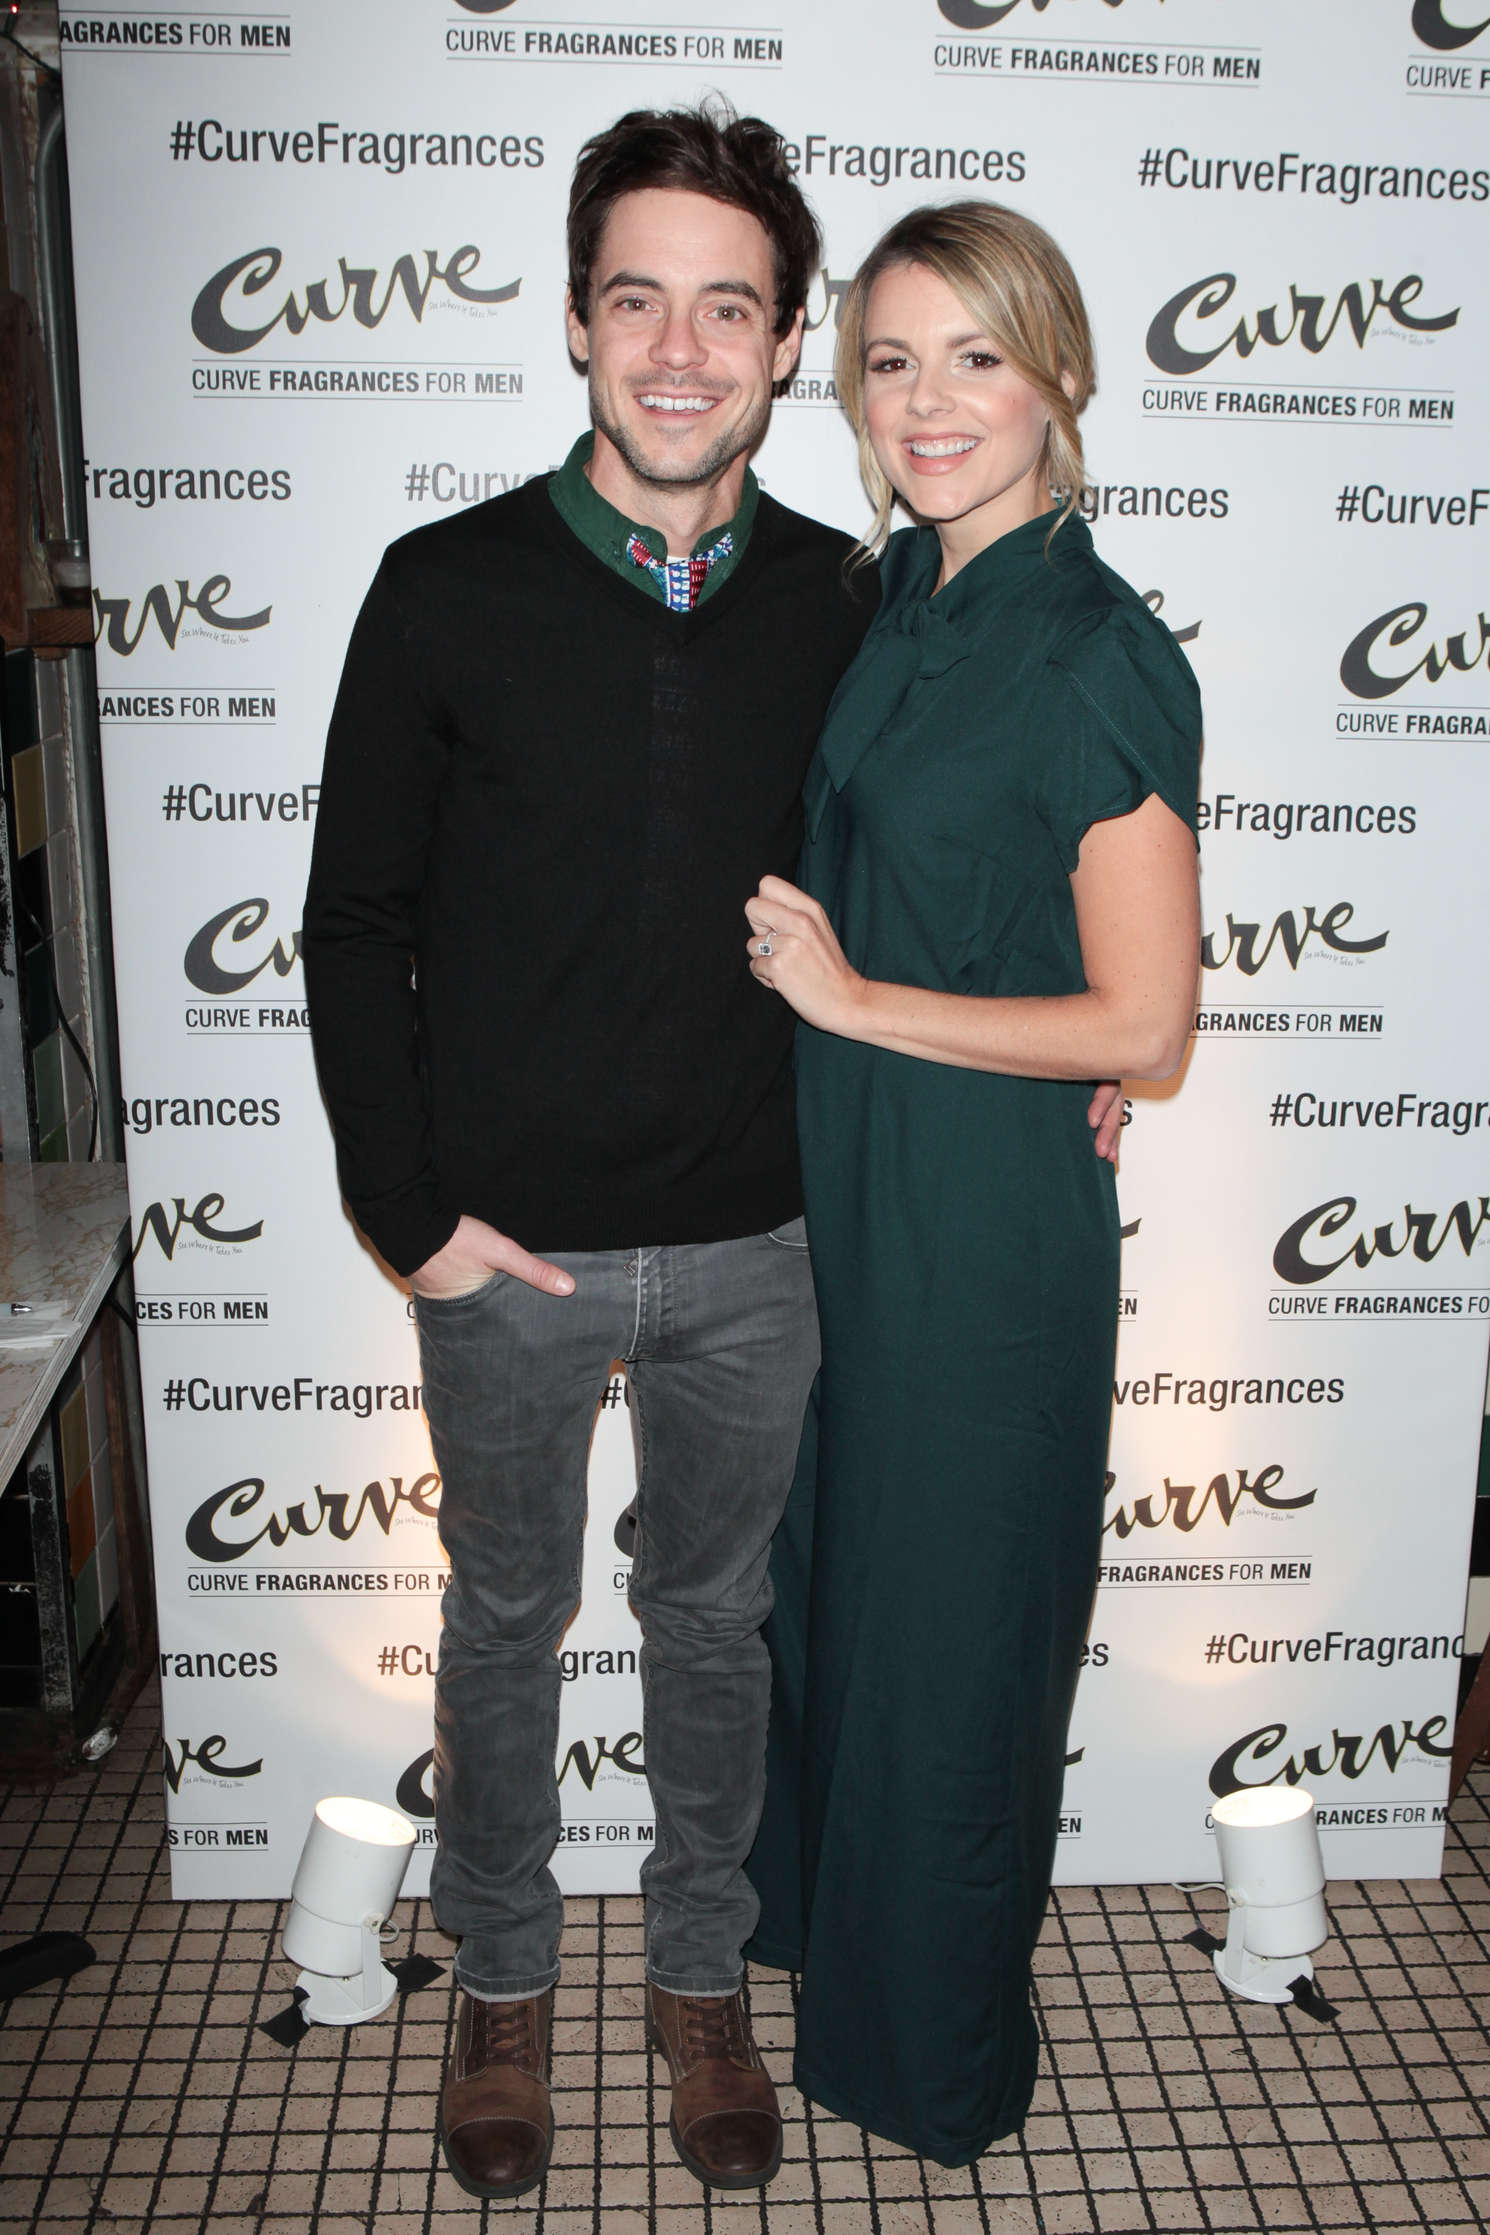 Ali Fedotowsky Hosts Curve Fragrances For Men TriviaNYC Game Night in New York